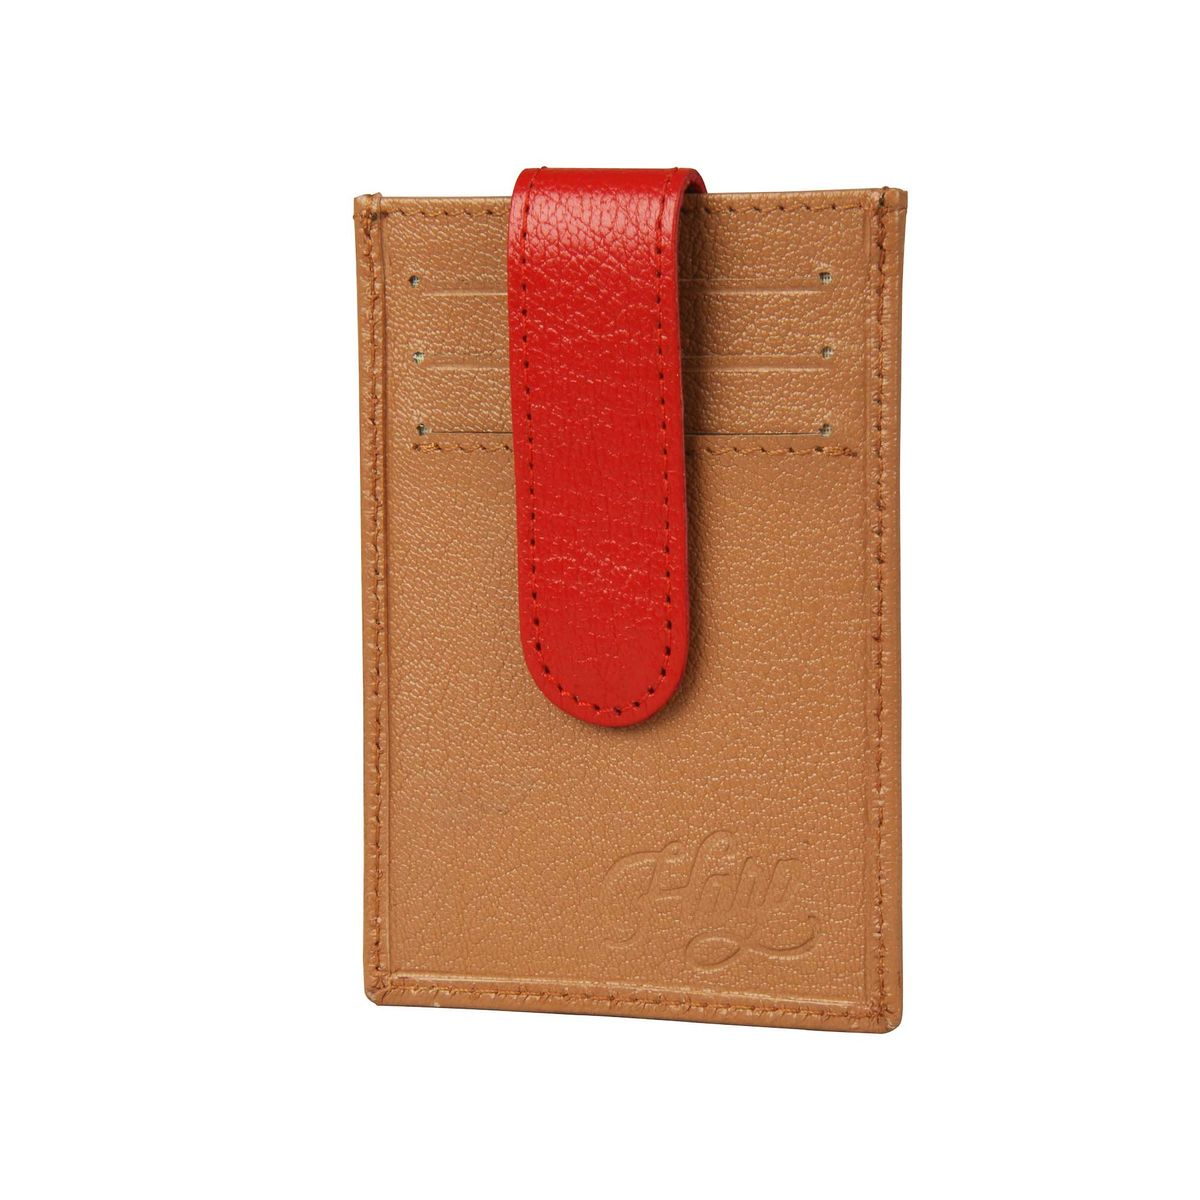 Harp Harp biege Color Leather Material Wallets